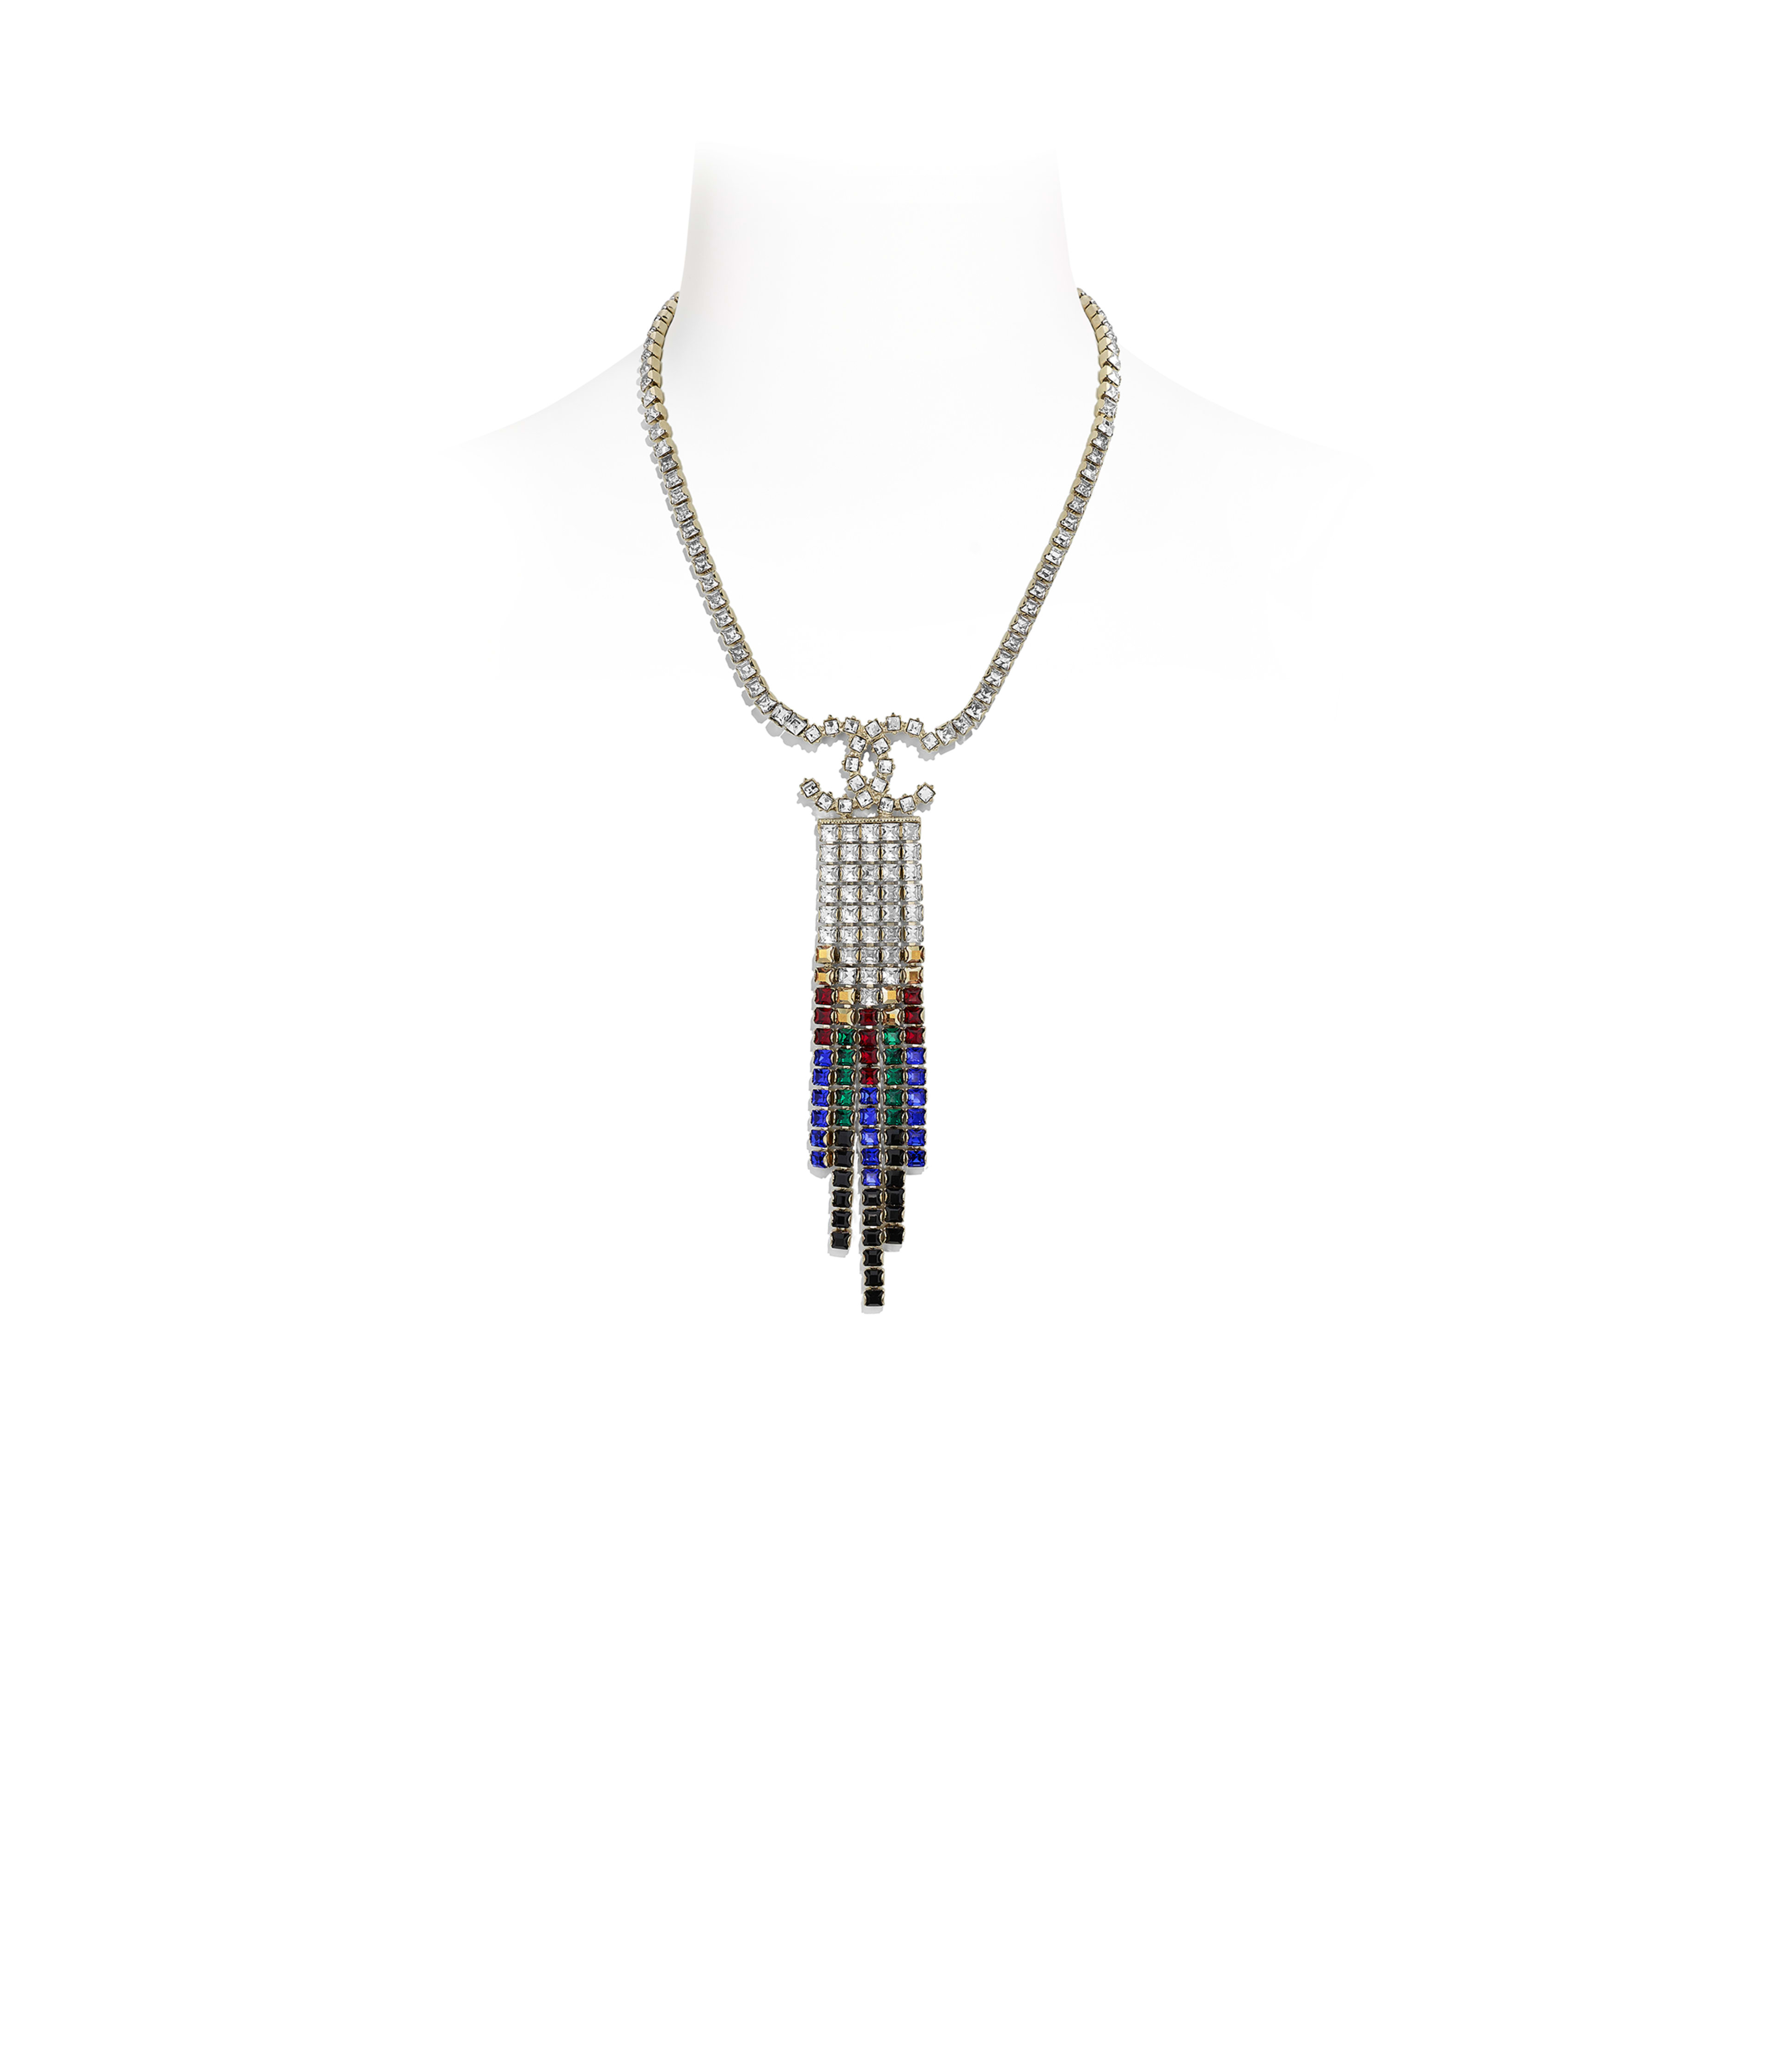 44614a454 Necklace Metal & Strass, Gold, Black, Red, Blue & Crystal Ref.  AB2030Y02003Z9145